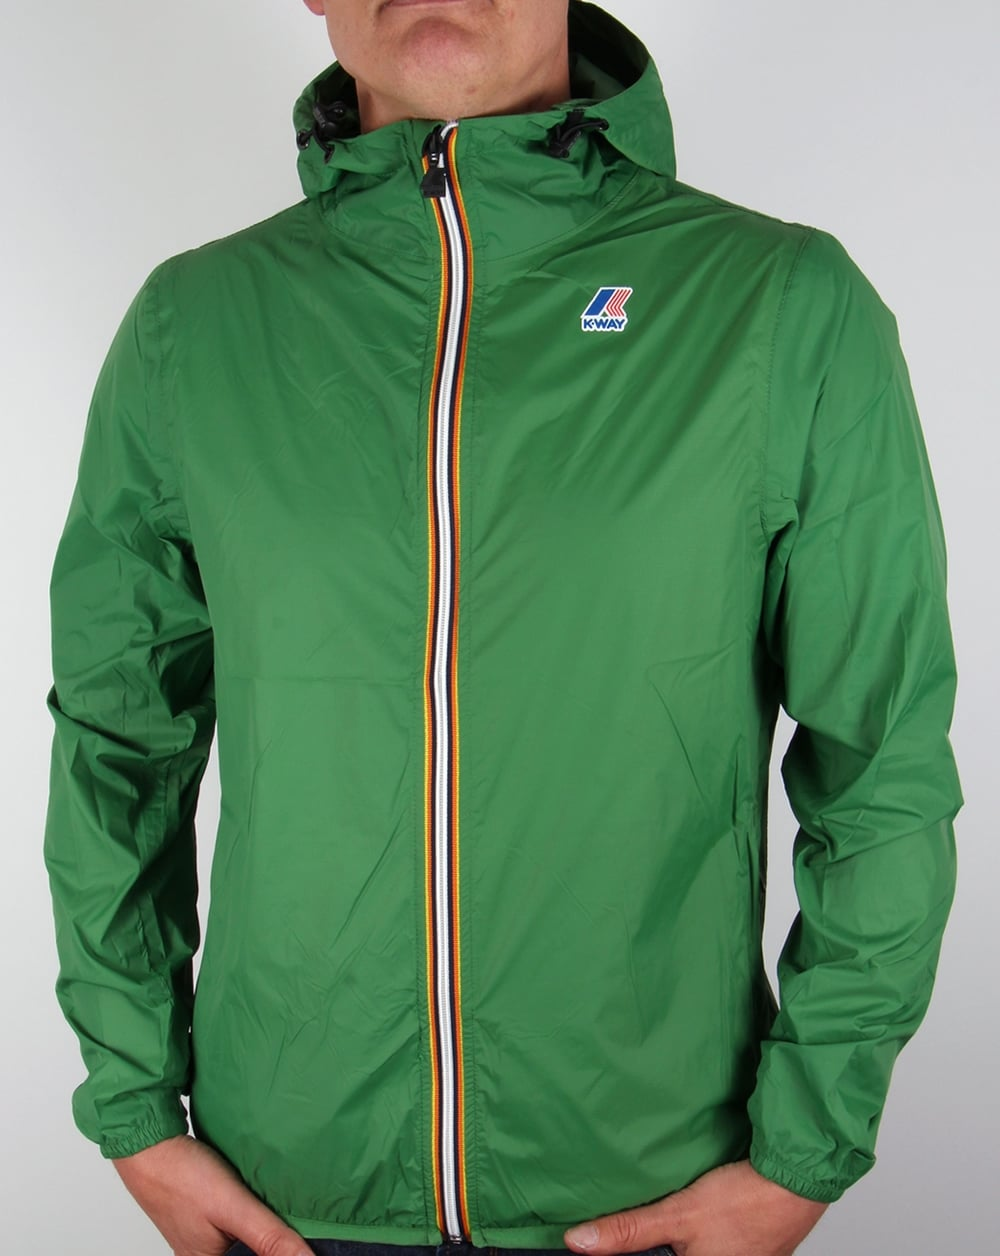 k way claude 3 0 rainproof jacket greenwindbreaker coat pac a mac full zip